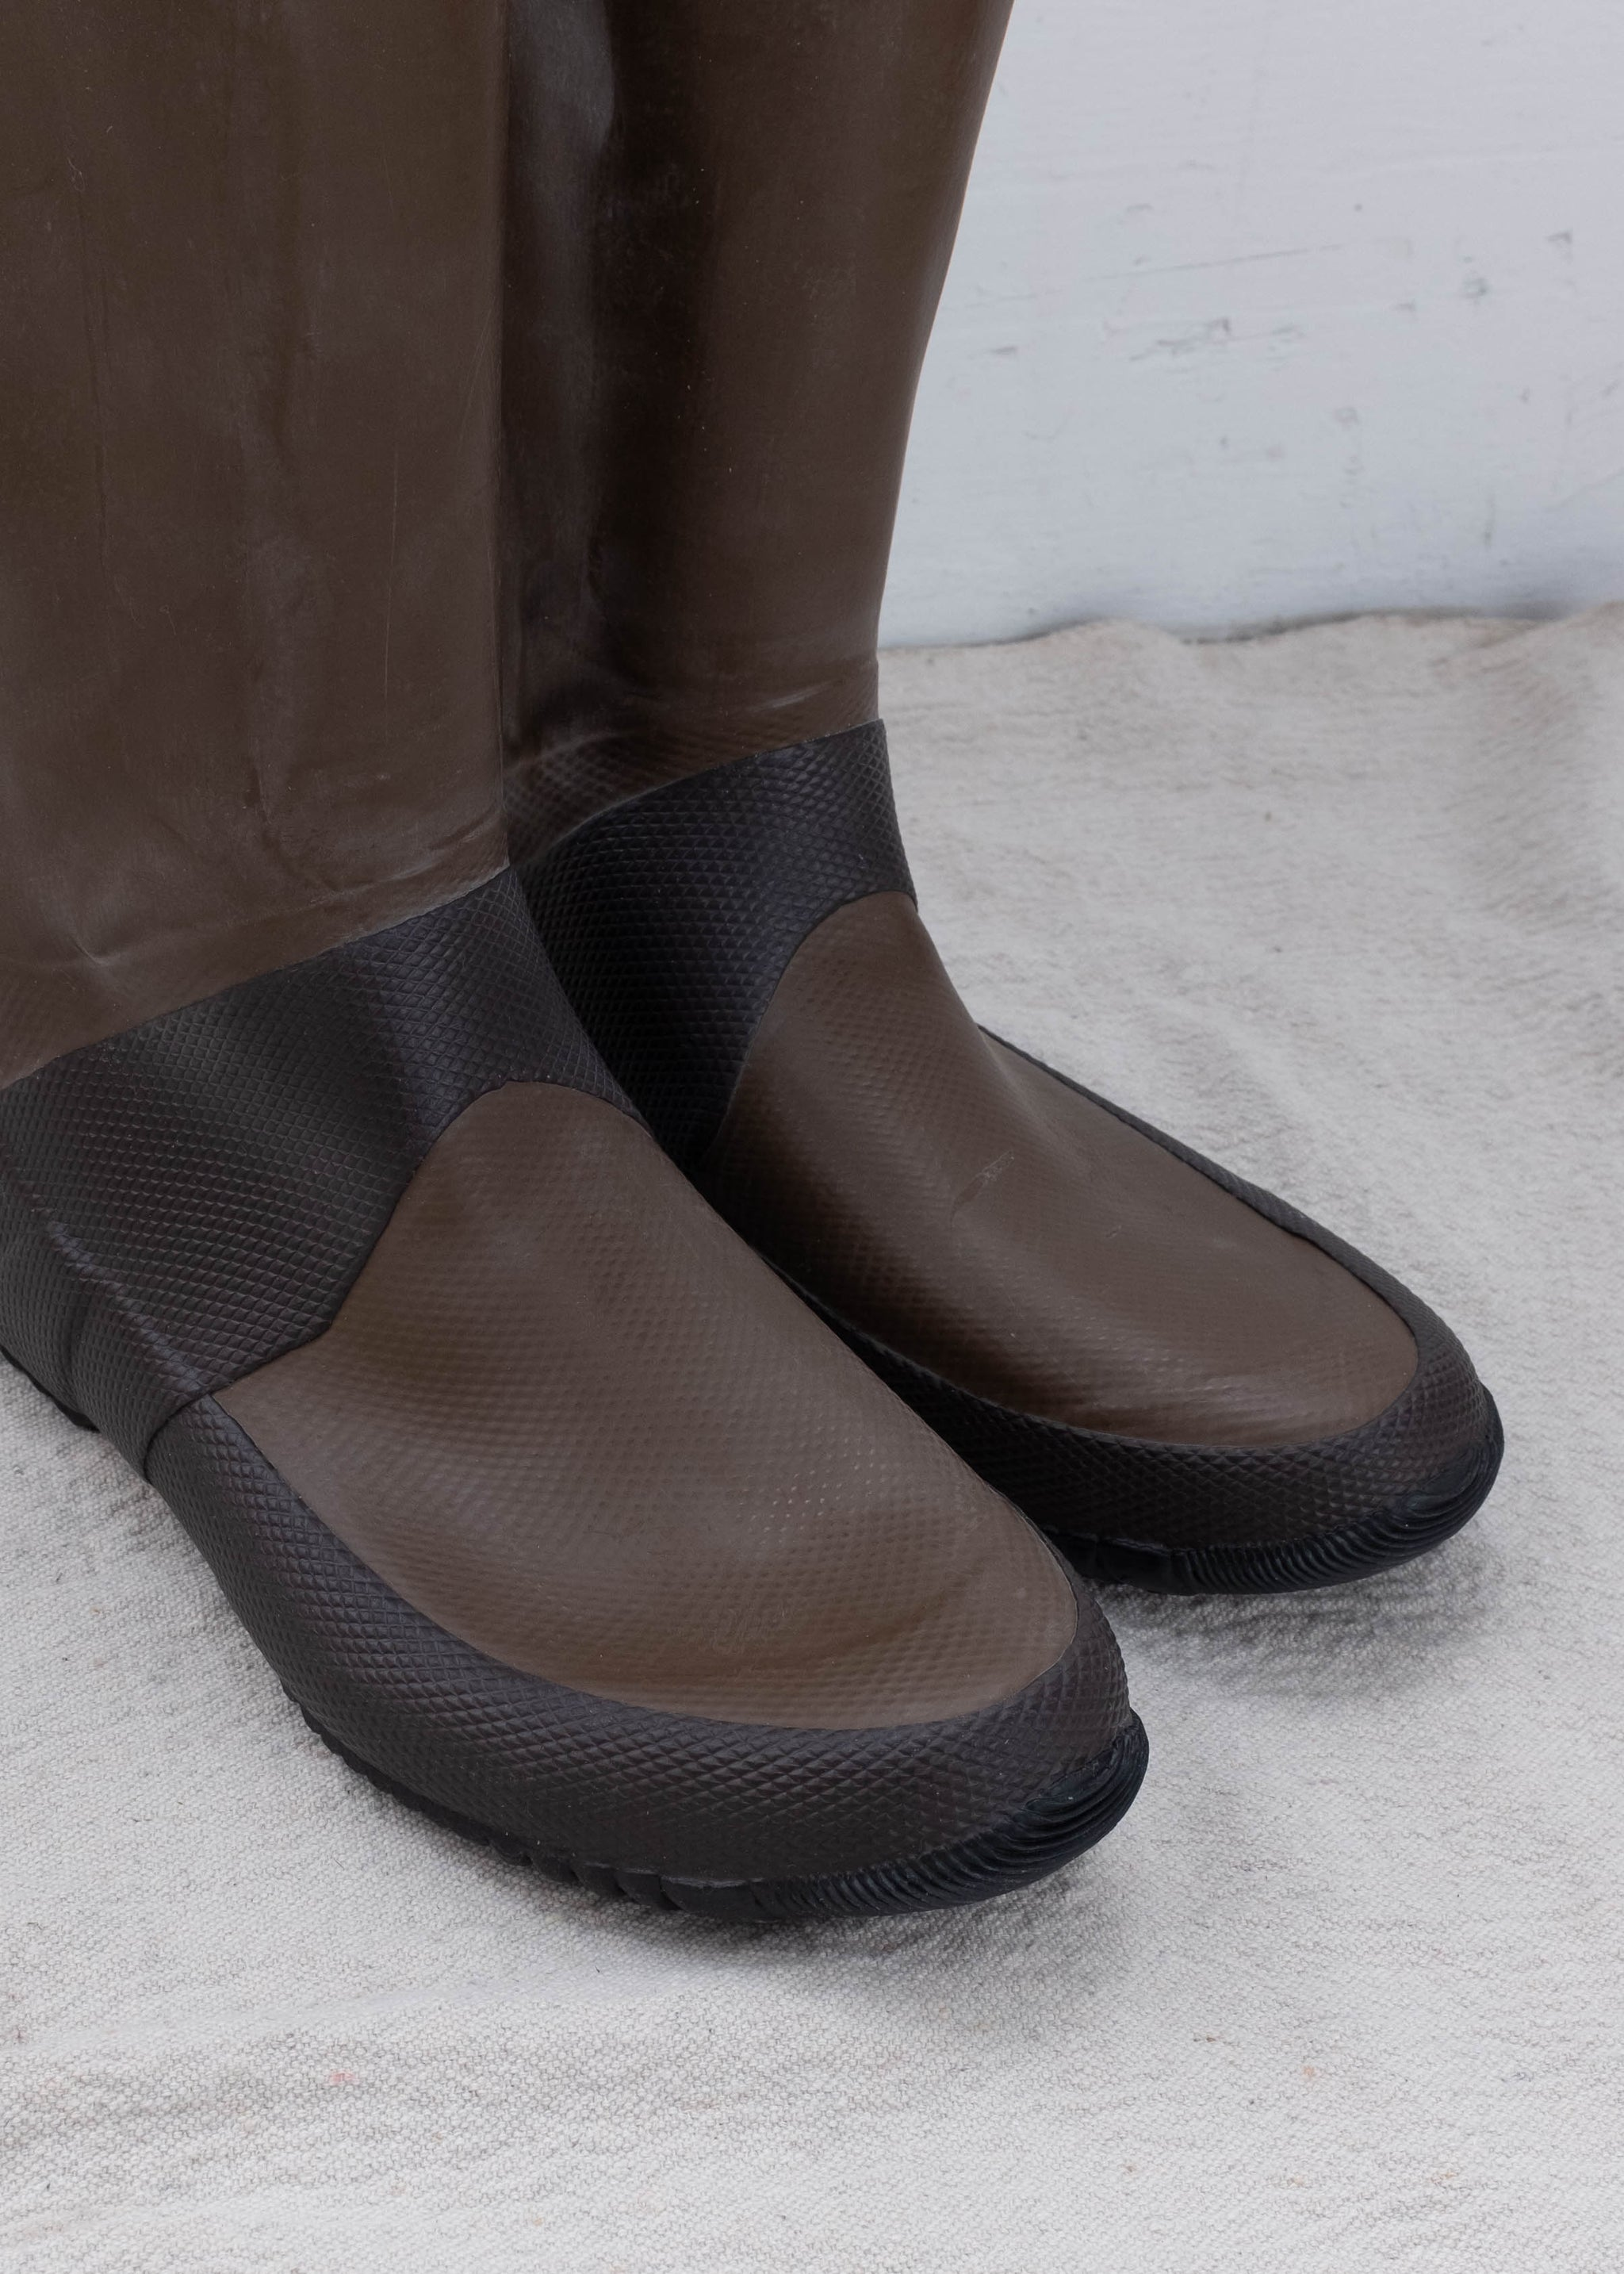 Brown heavy duty rain boots with drawstring.